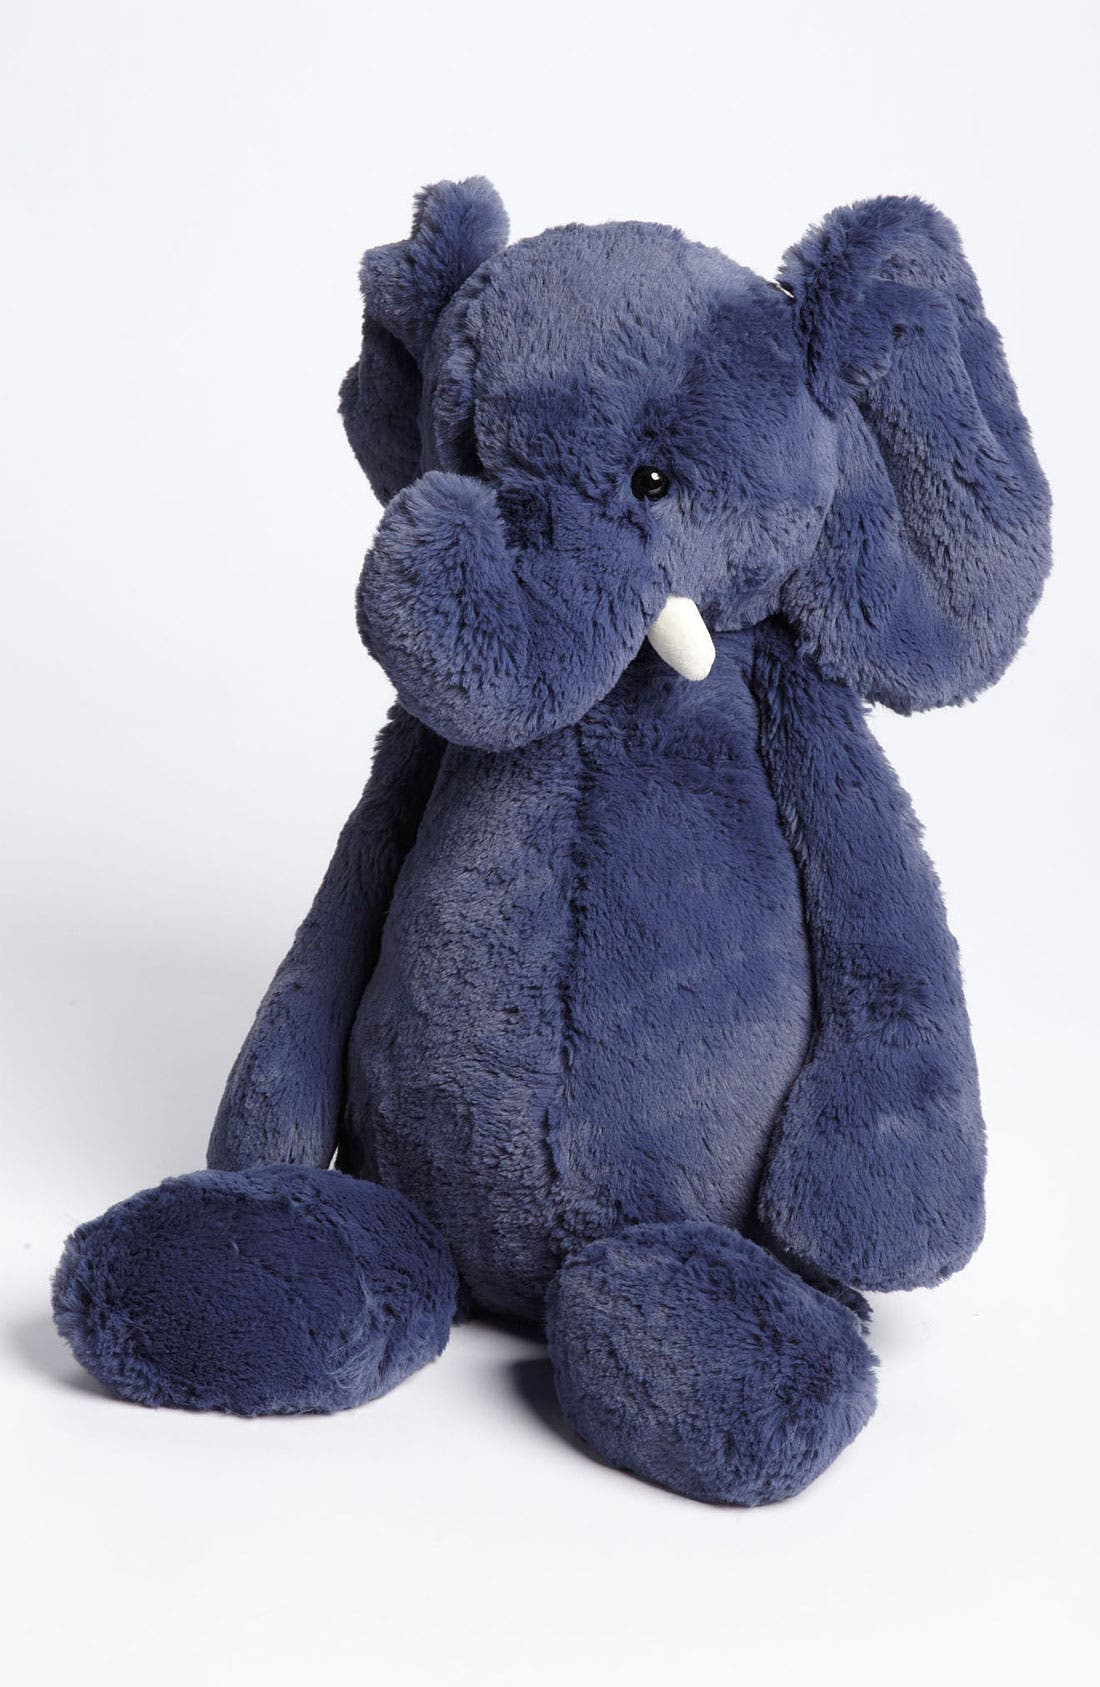 Jellycat Bashful Elephant Stuffed Animal Nordstrom